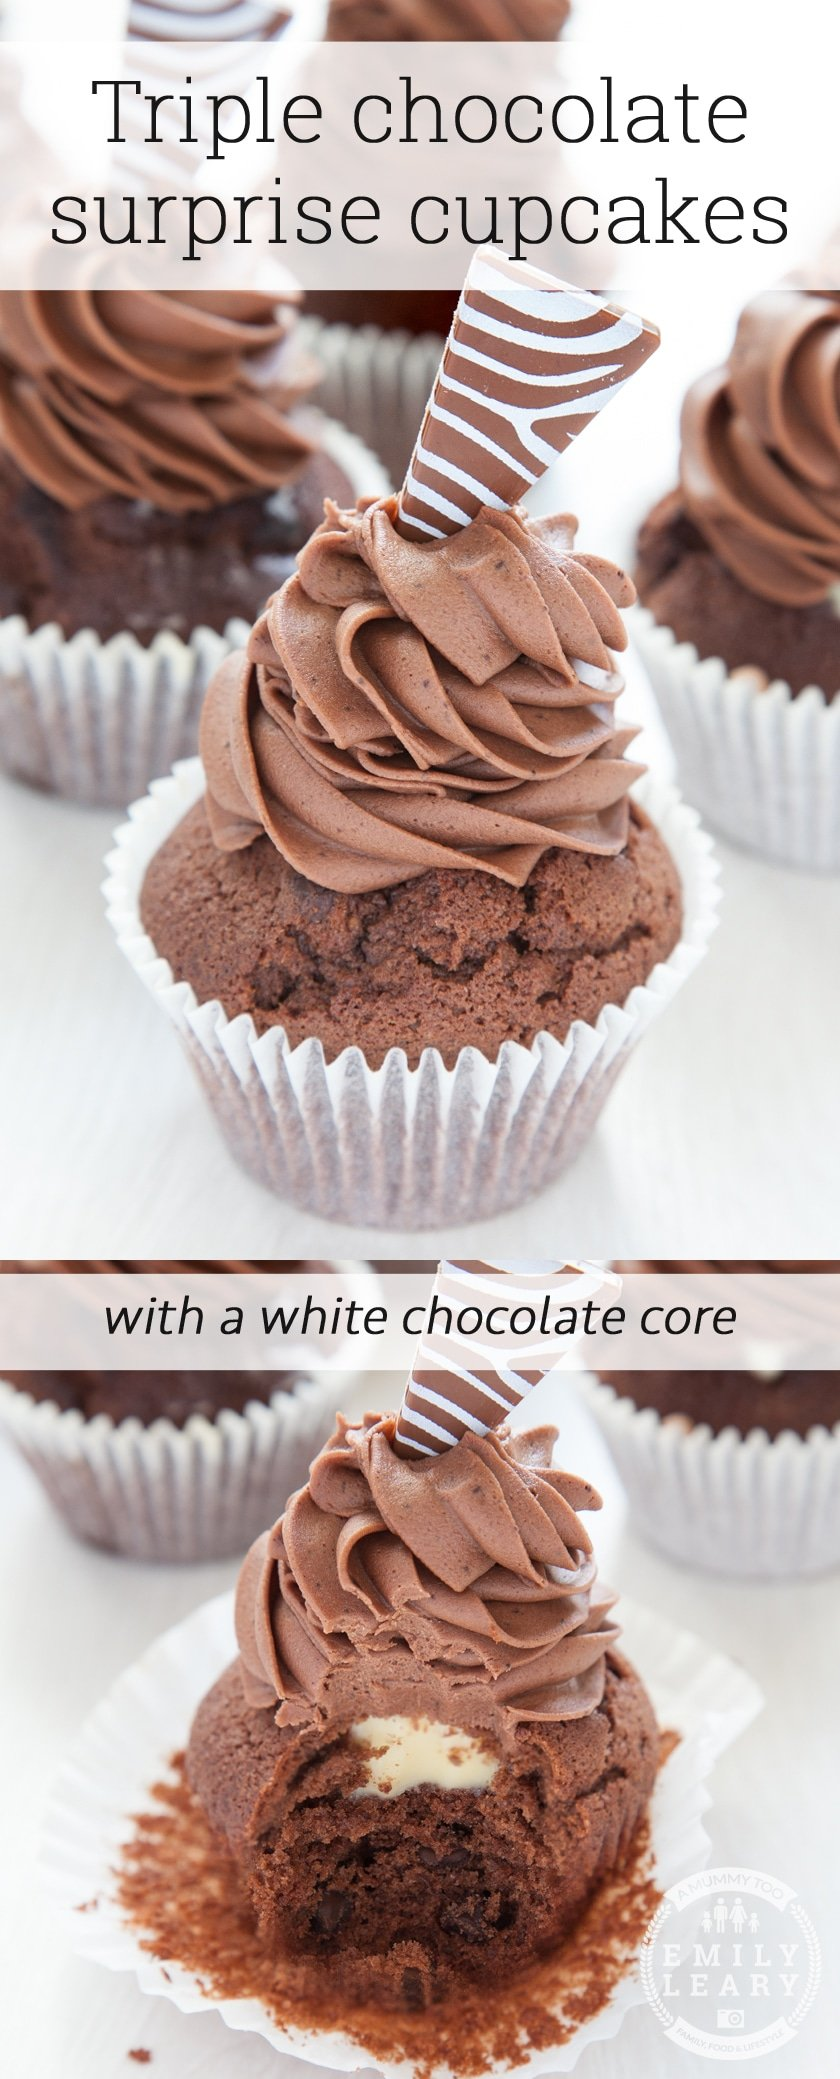 Here's how to make these tasty triple chocolate surprise cupcakes with a white chocolate core